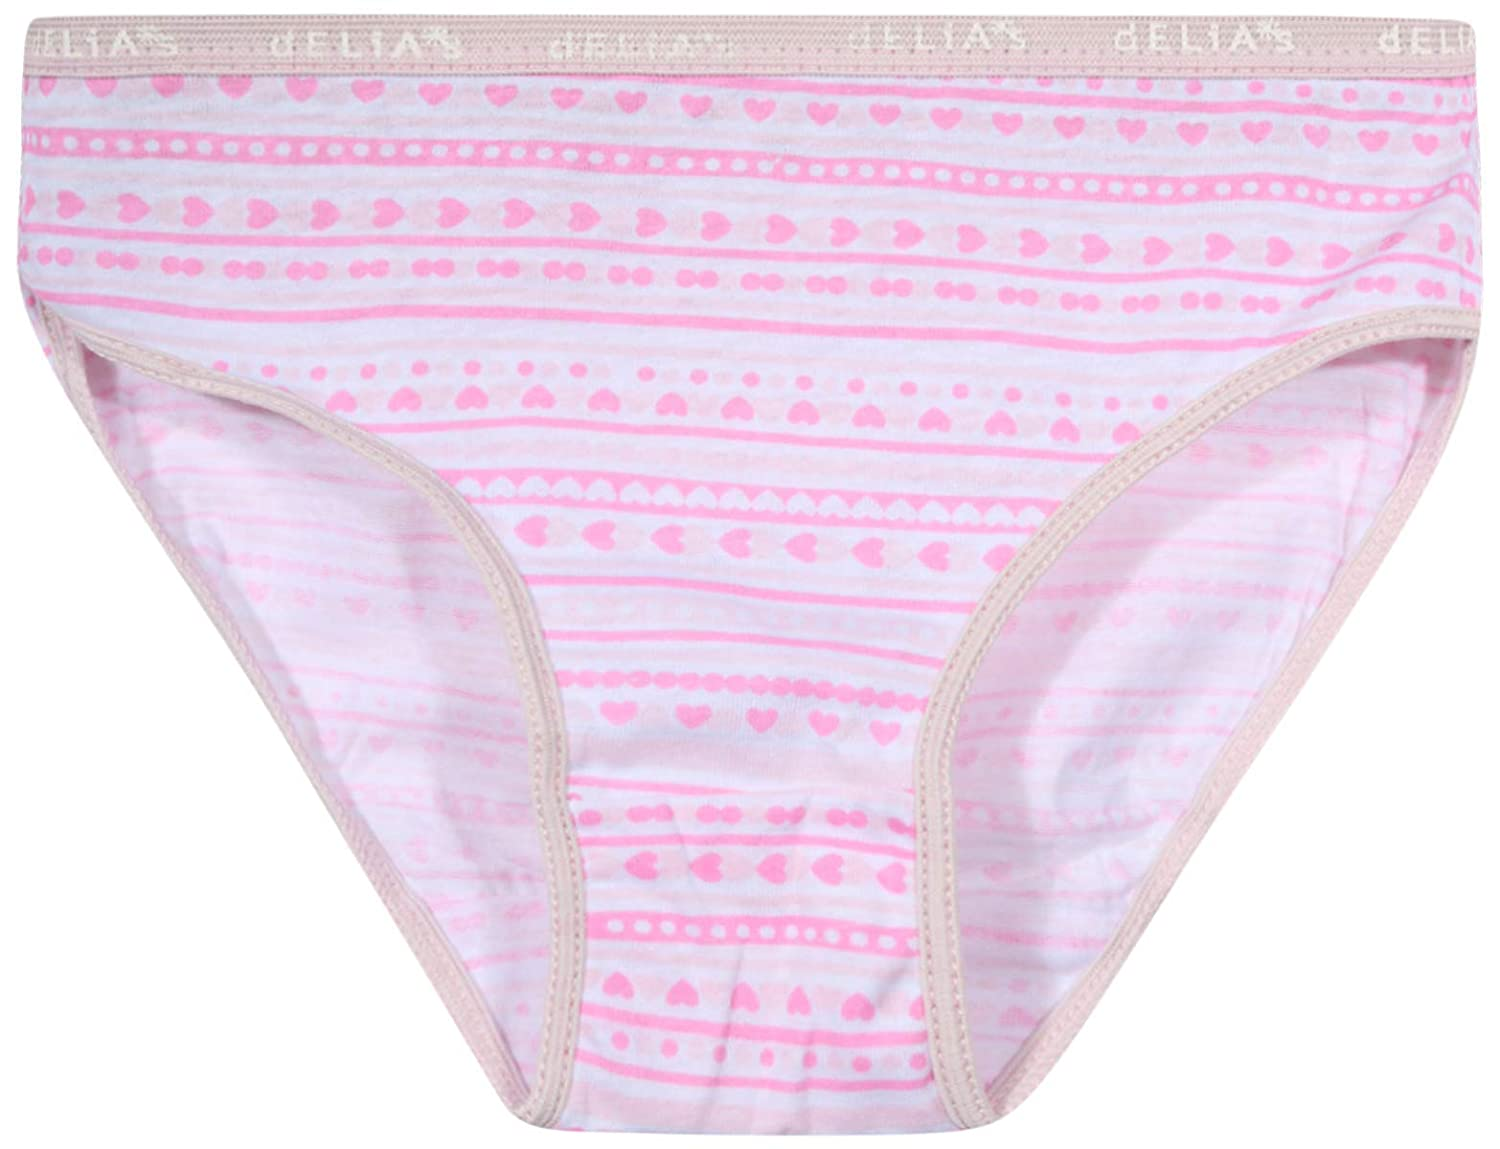 dELiAs Girls Cotton Bikini Underwear Multipack 20 Pack